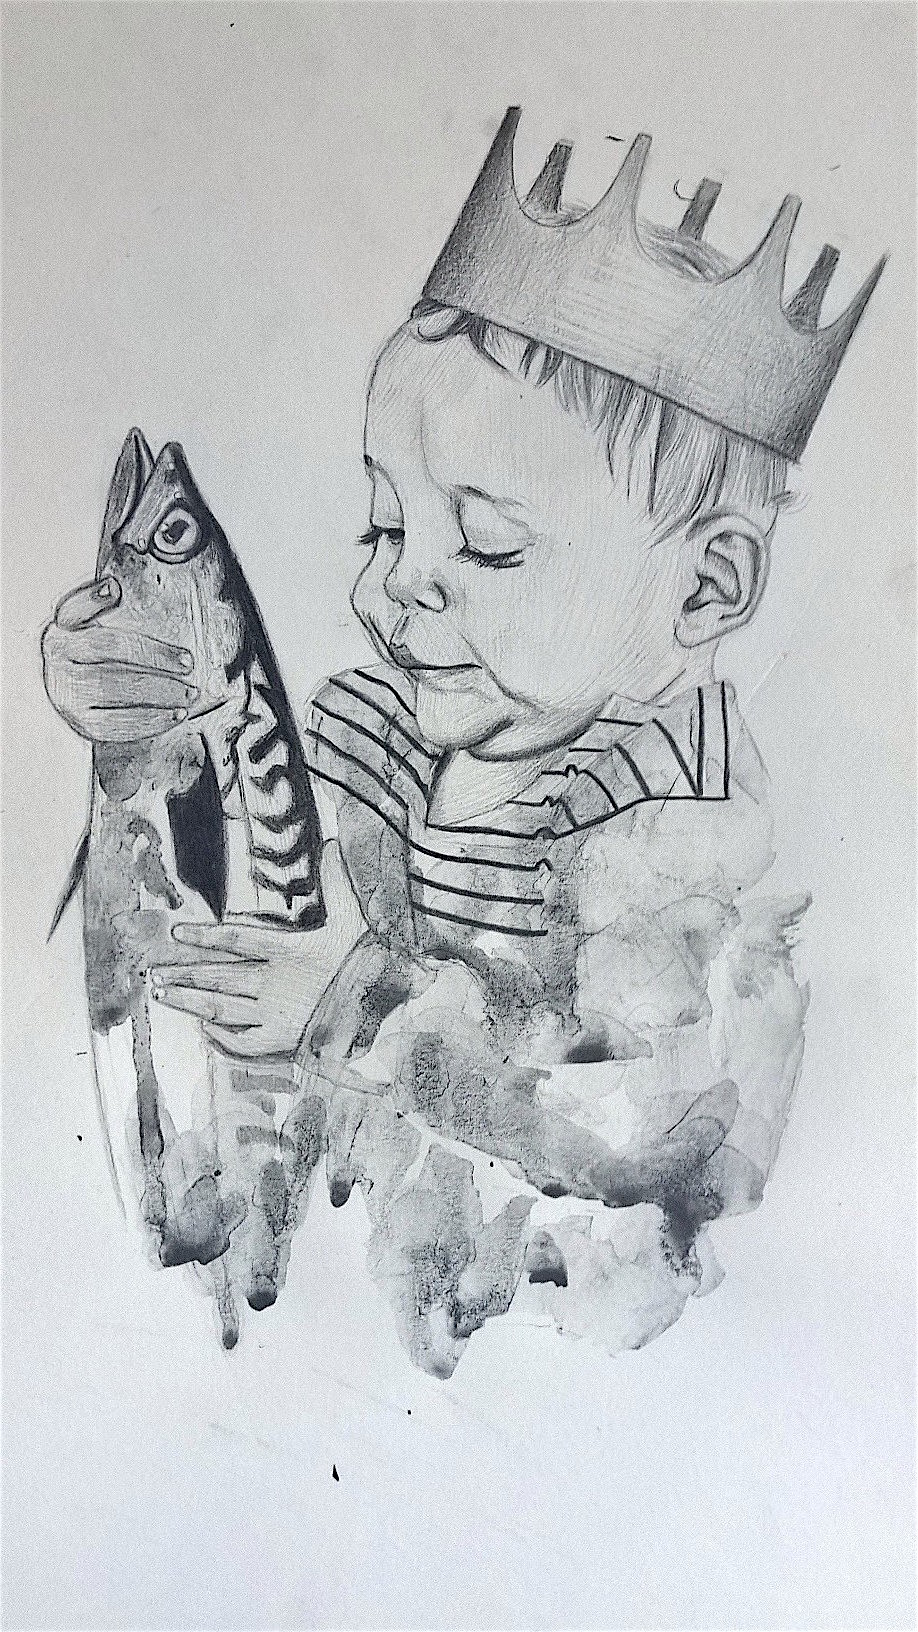 King kid and fish. 2018